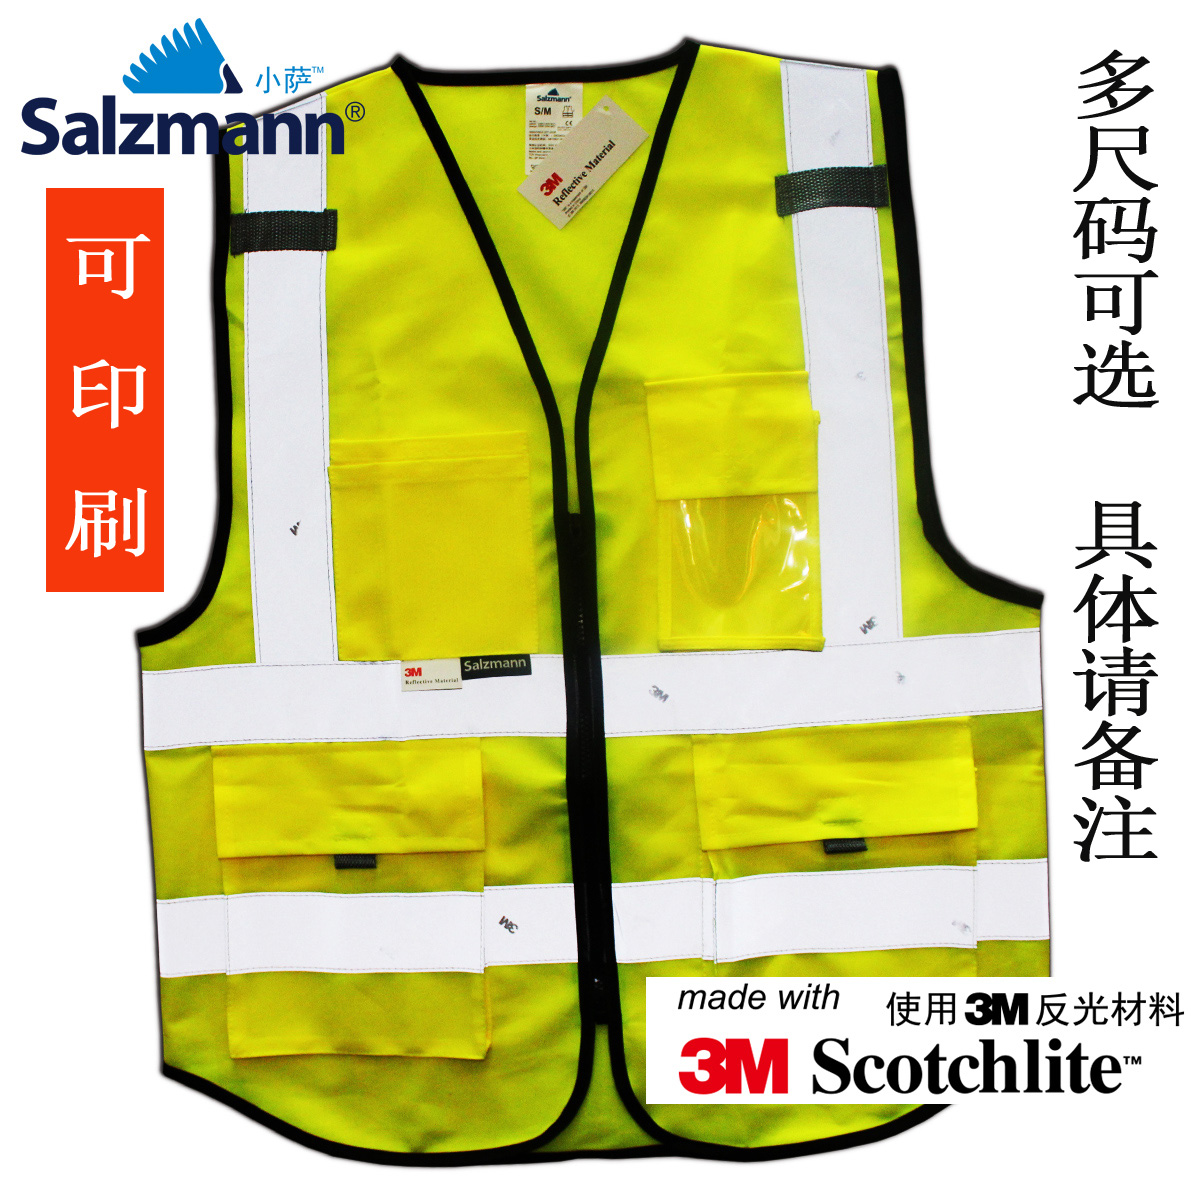 Get Quotations M Construction Safety Vest Reflective Can Print Fluorescent Yellow More Pockets Night Run Equipment Motorcycle